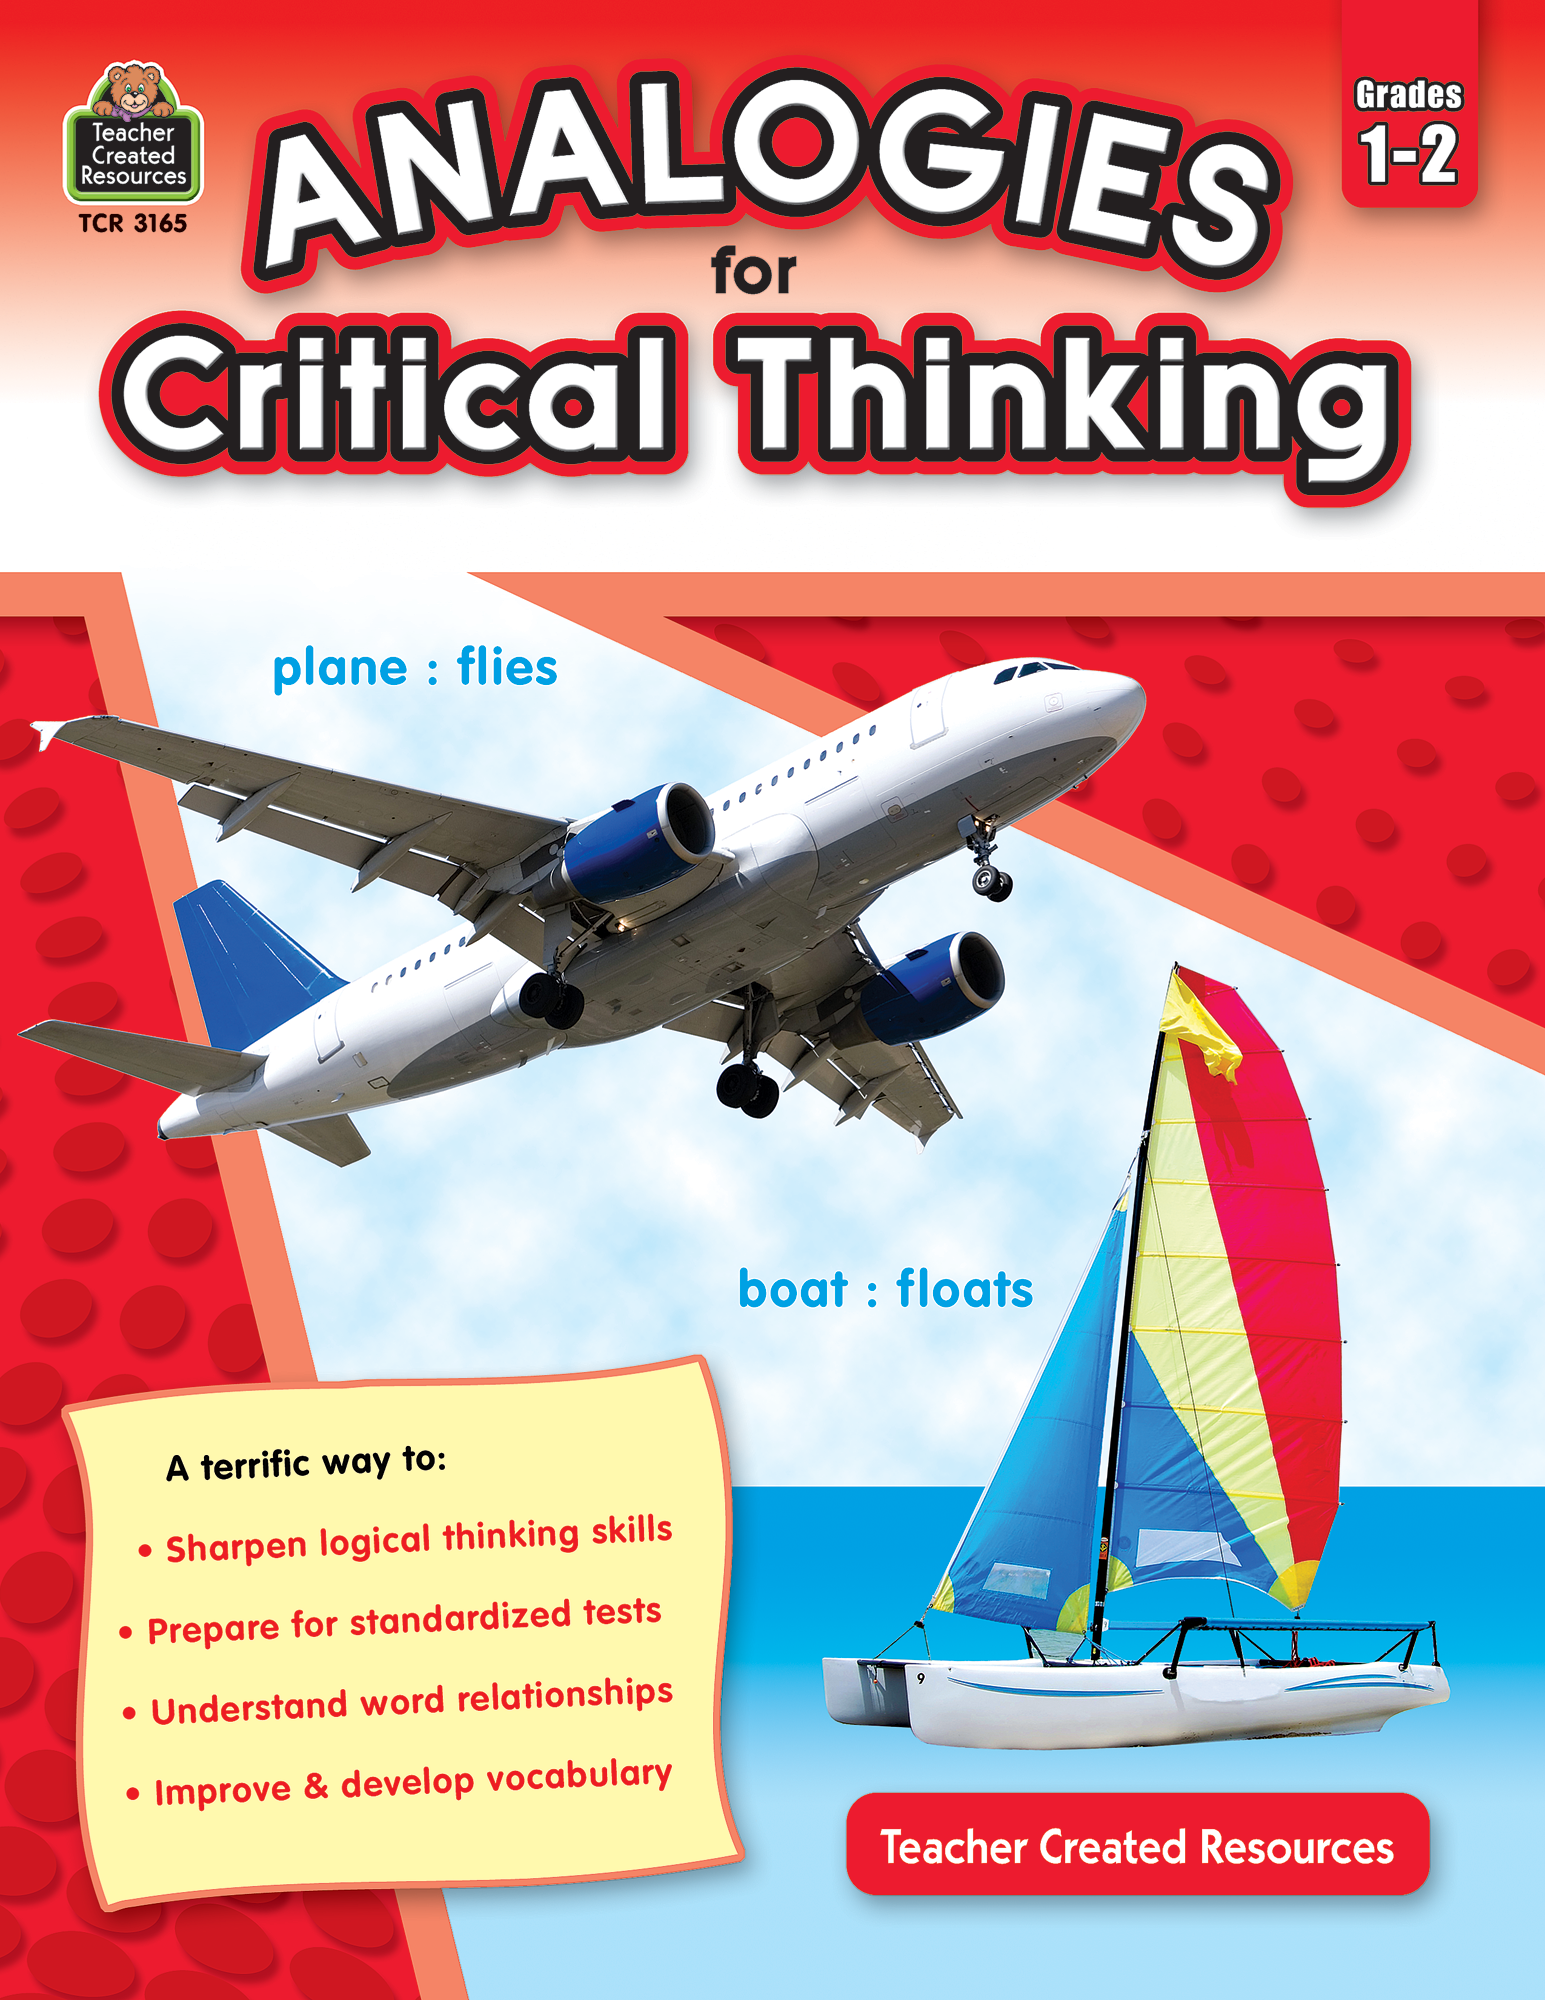 critical thinking in teaching vocabulary Ability and vocabulary learning strategy use, as well as comparing the critical thinking score of proficient and less proficient students data were collected using schmitt's vocabulary learning strategies question.